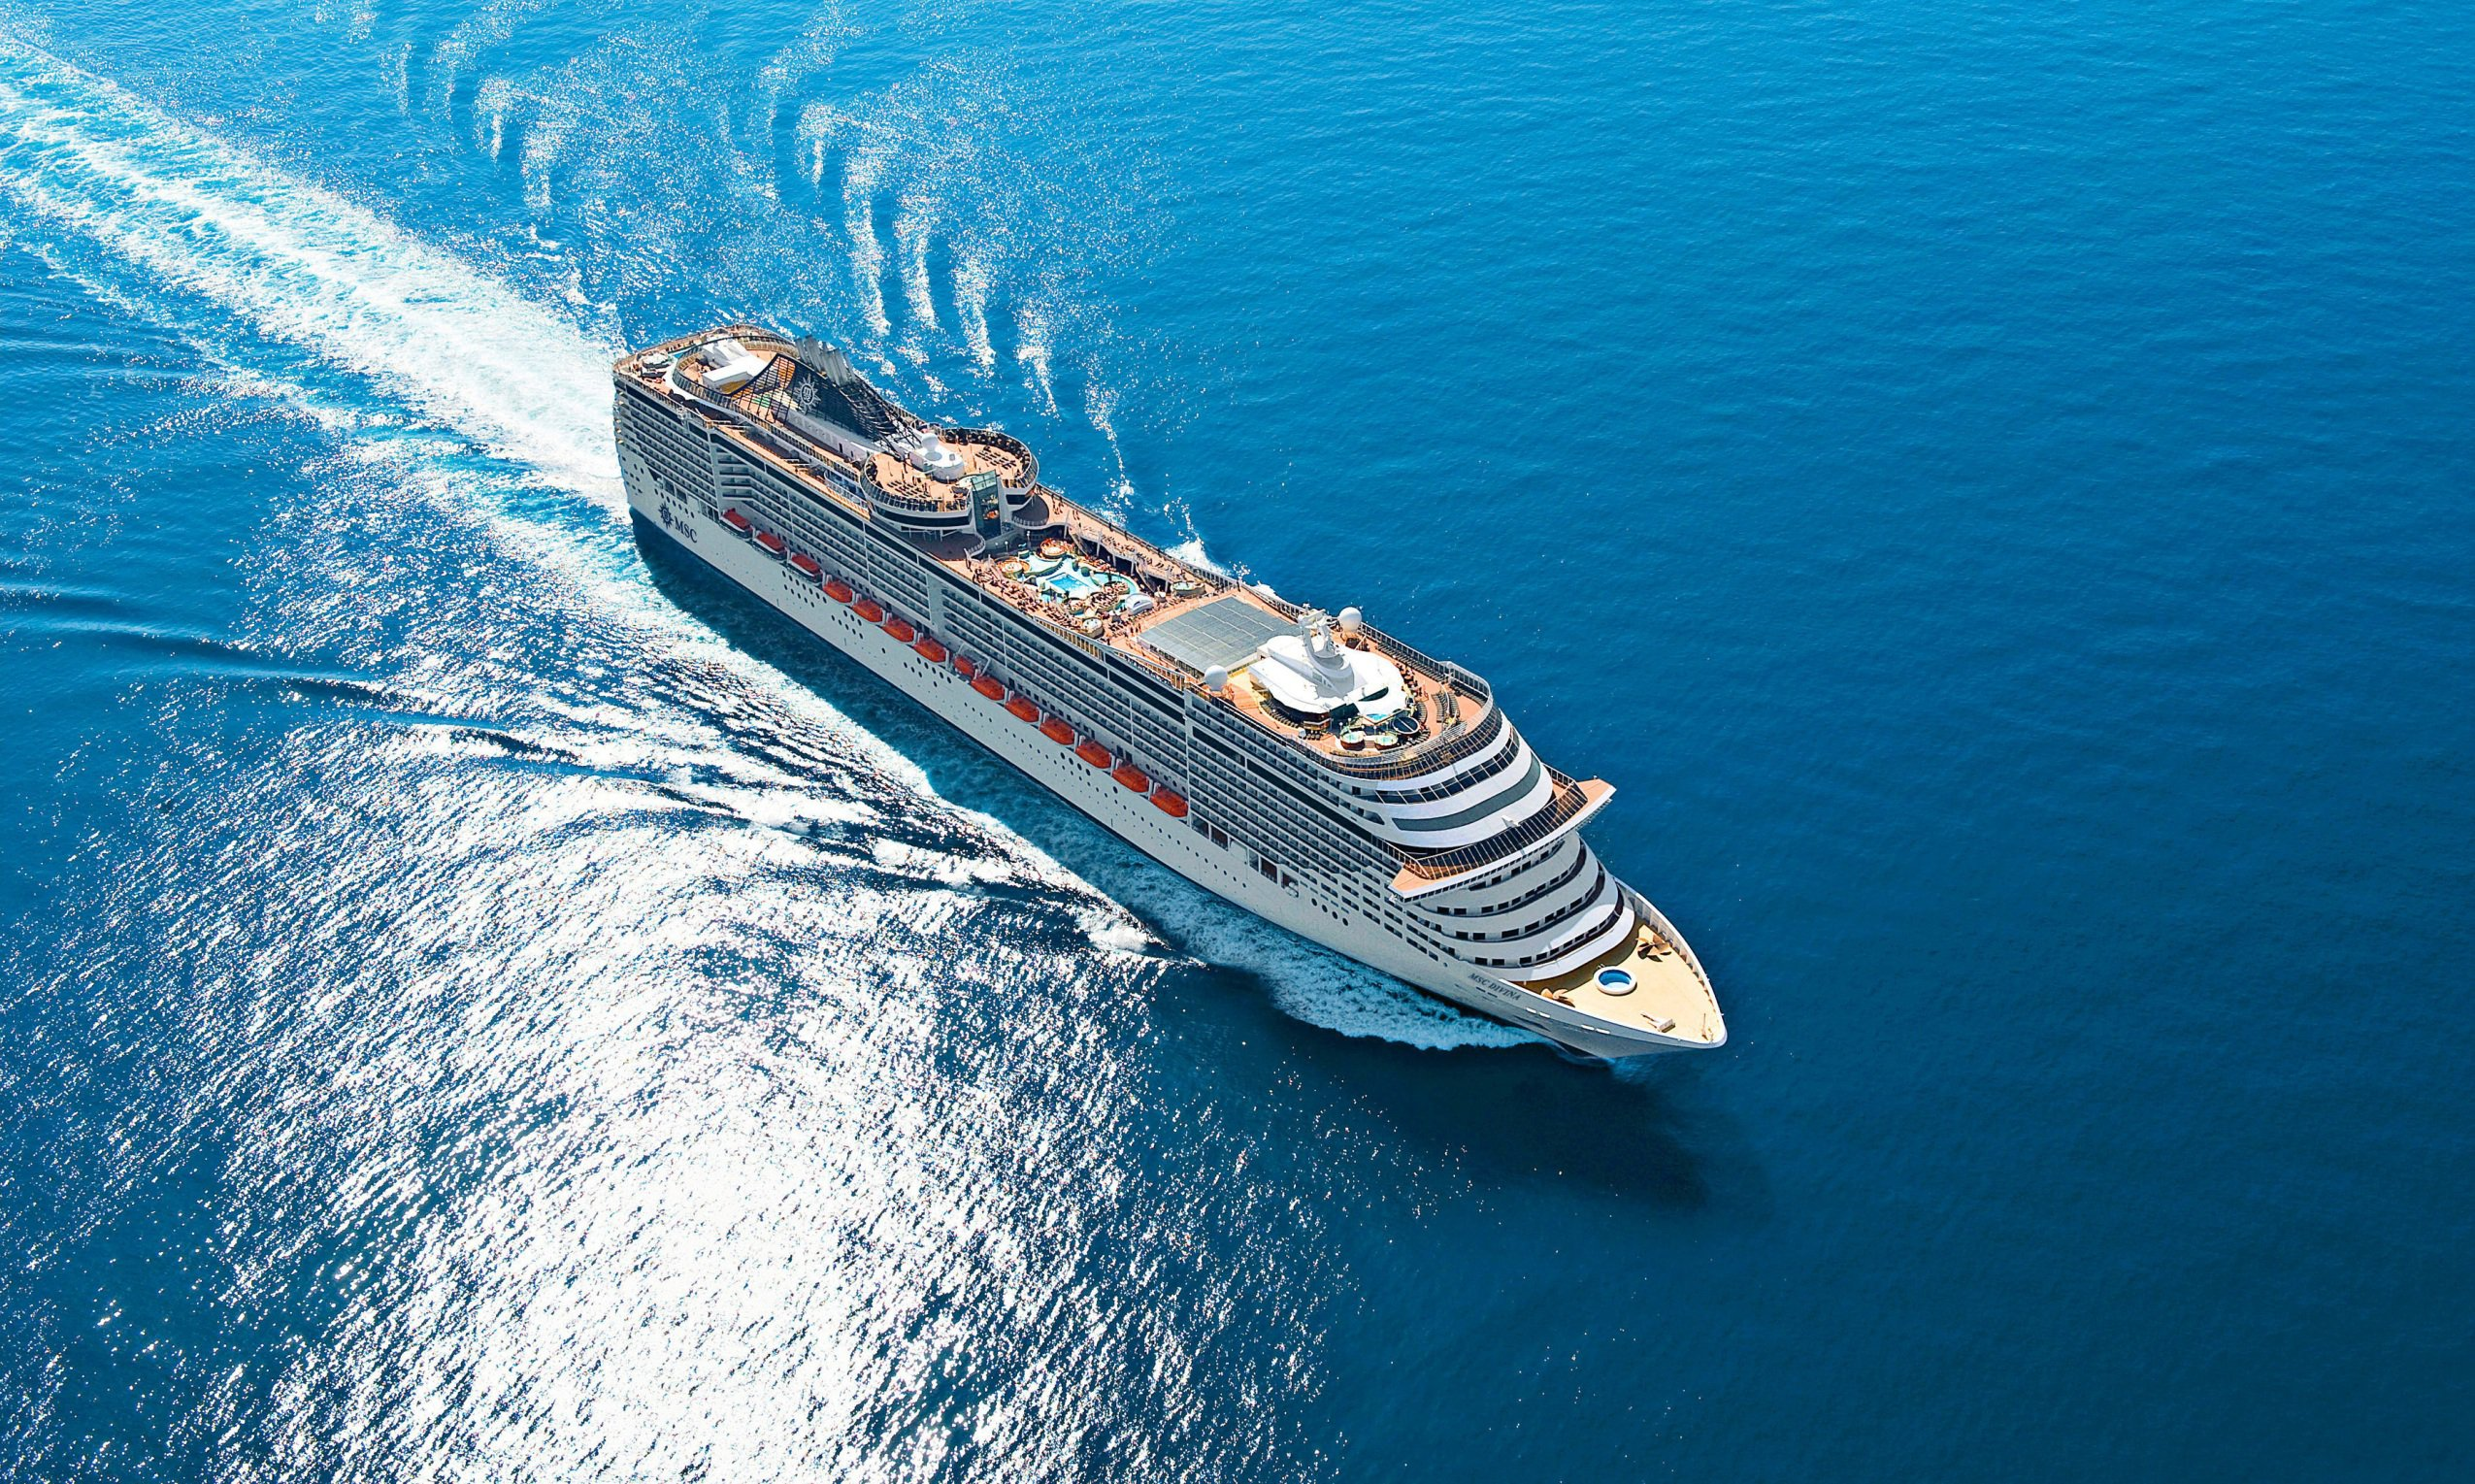 cruise_ship_msc_divina-other